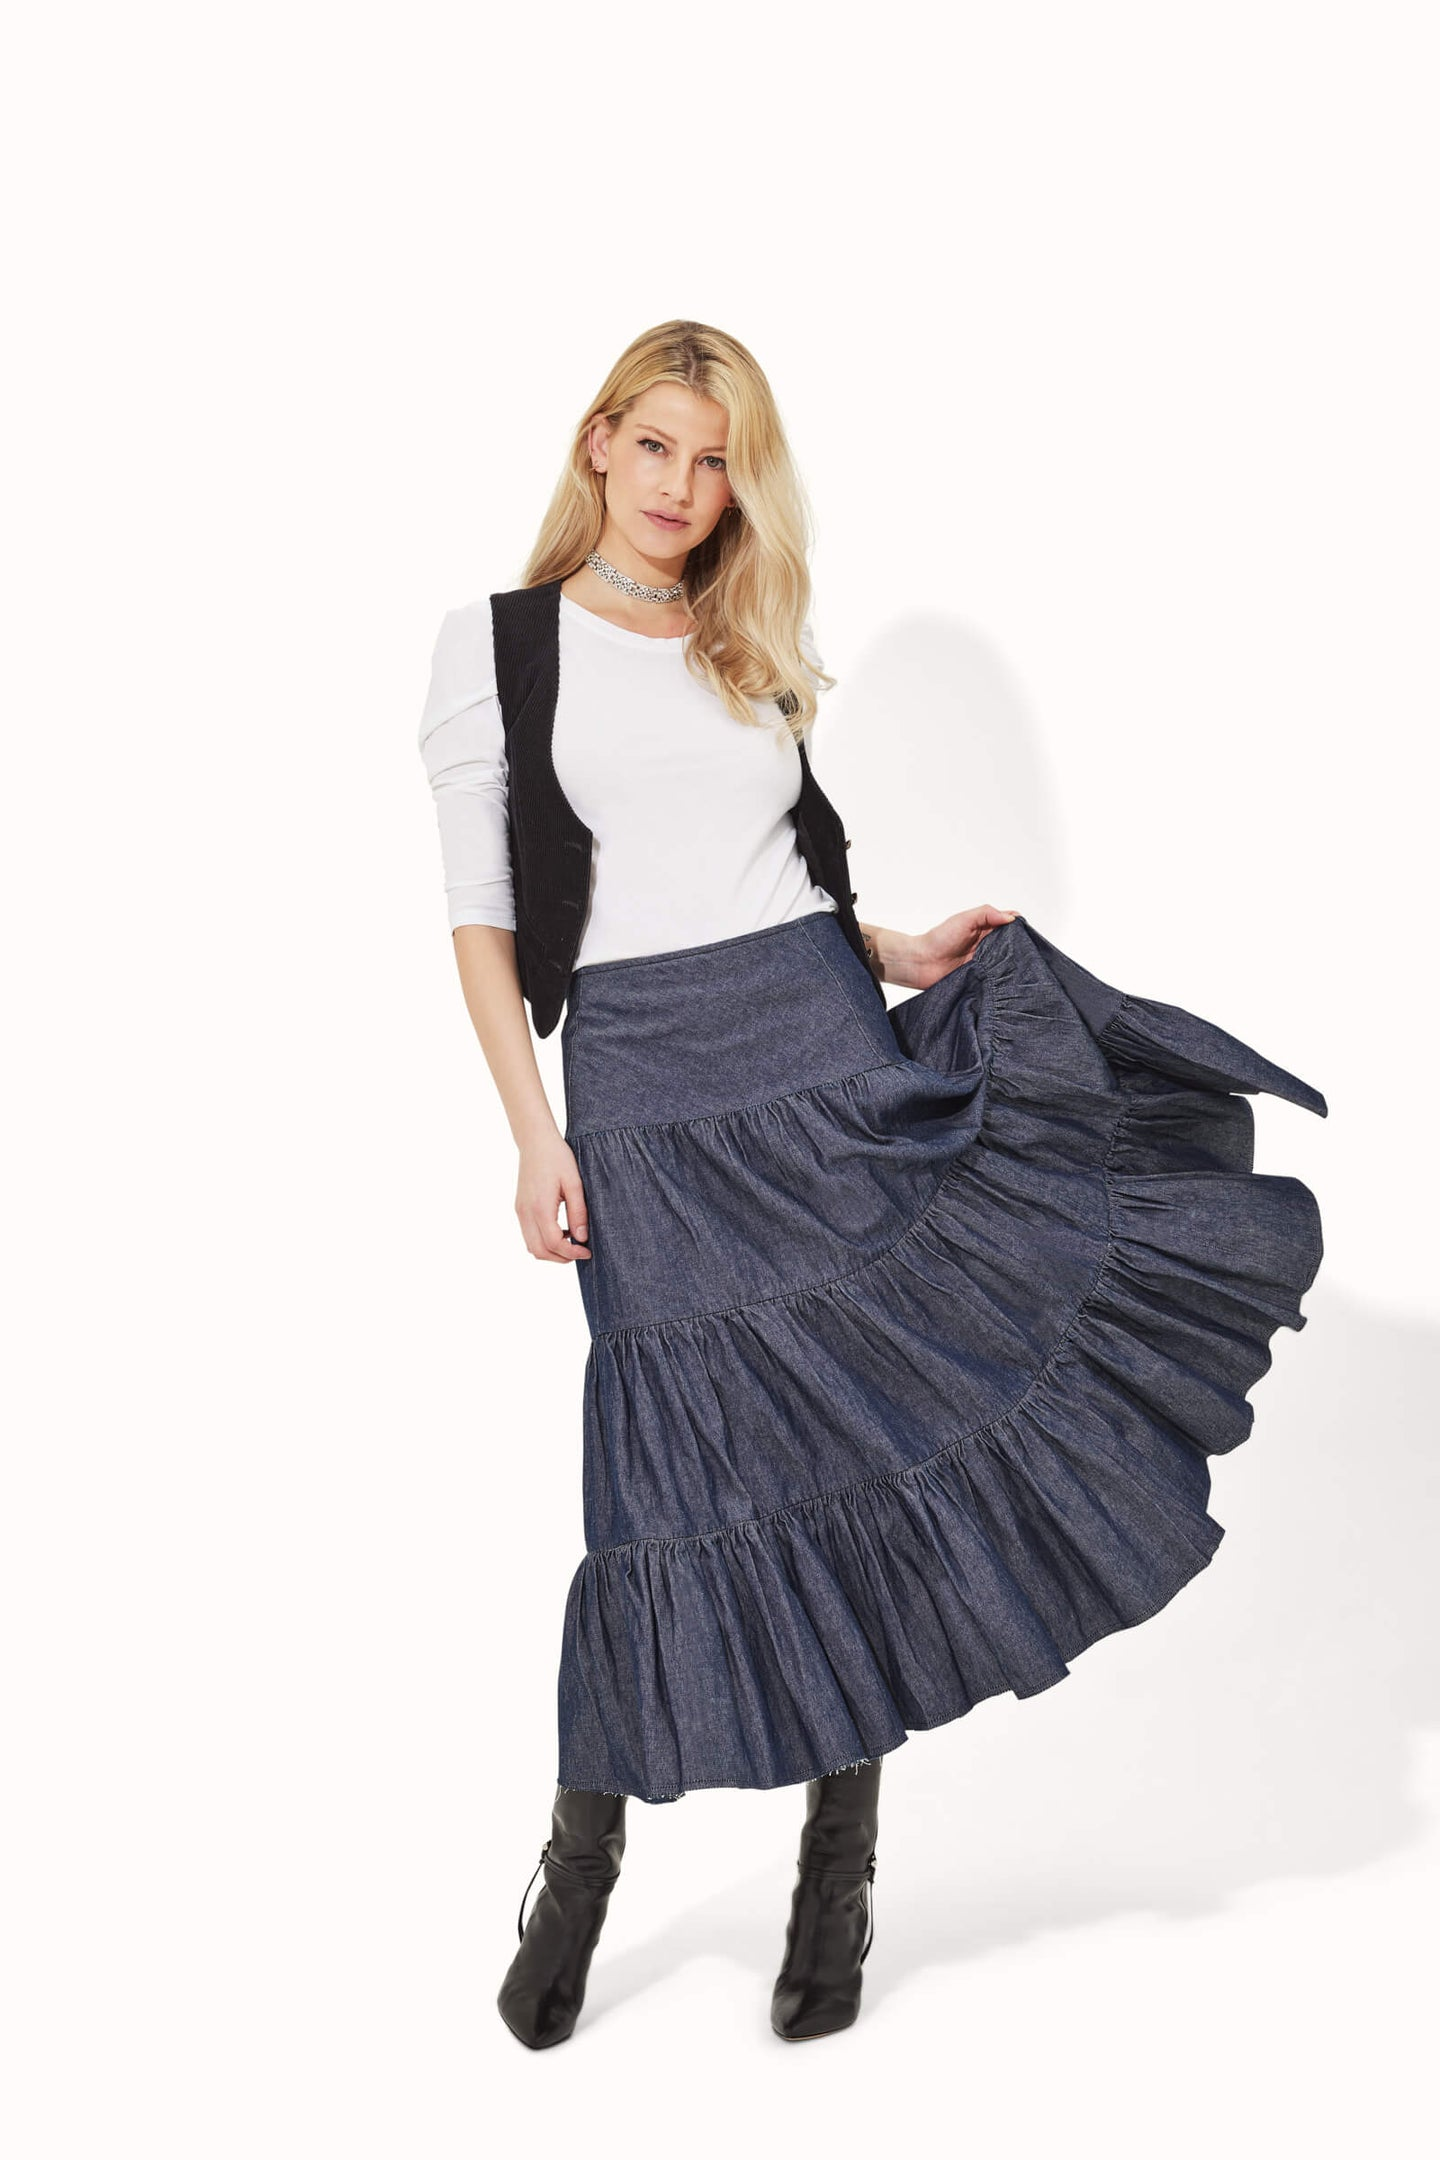 Veronica The Hip Hanging Swishy Skirt - Romantica